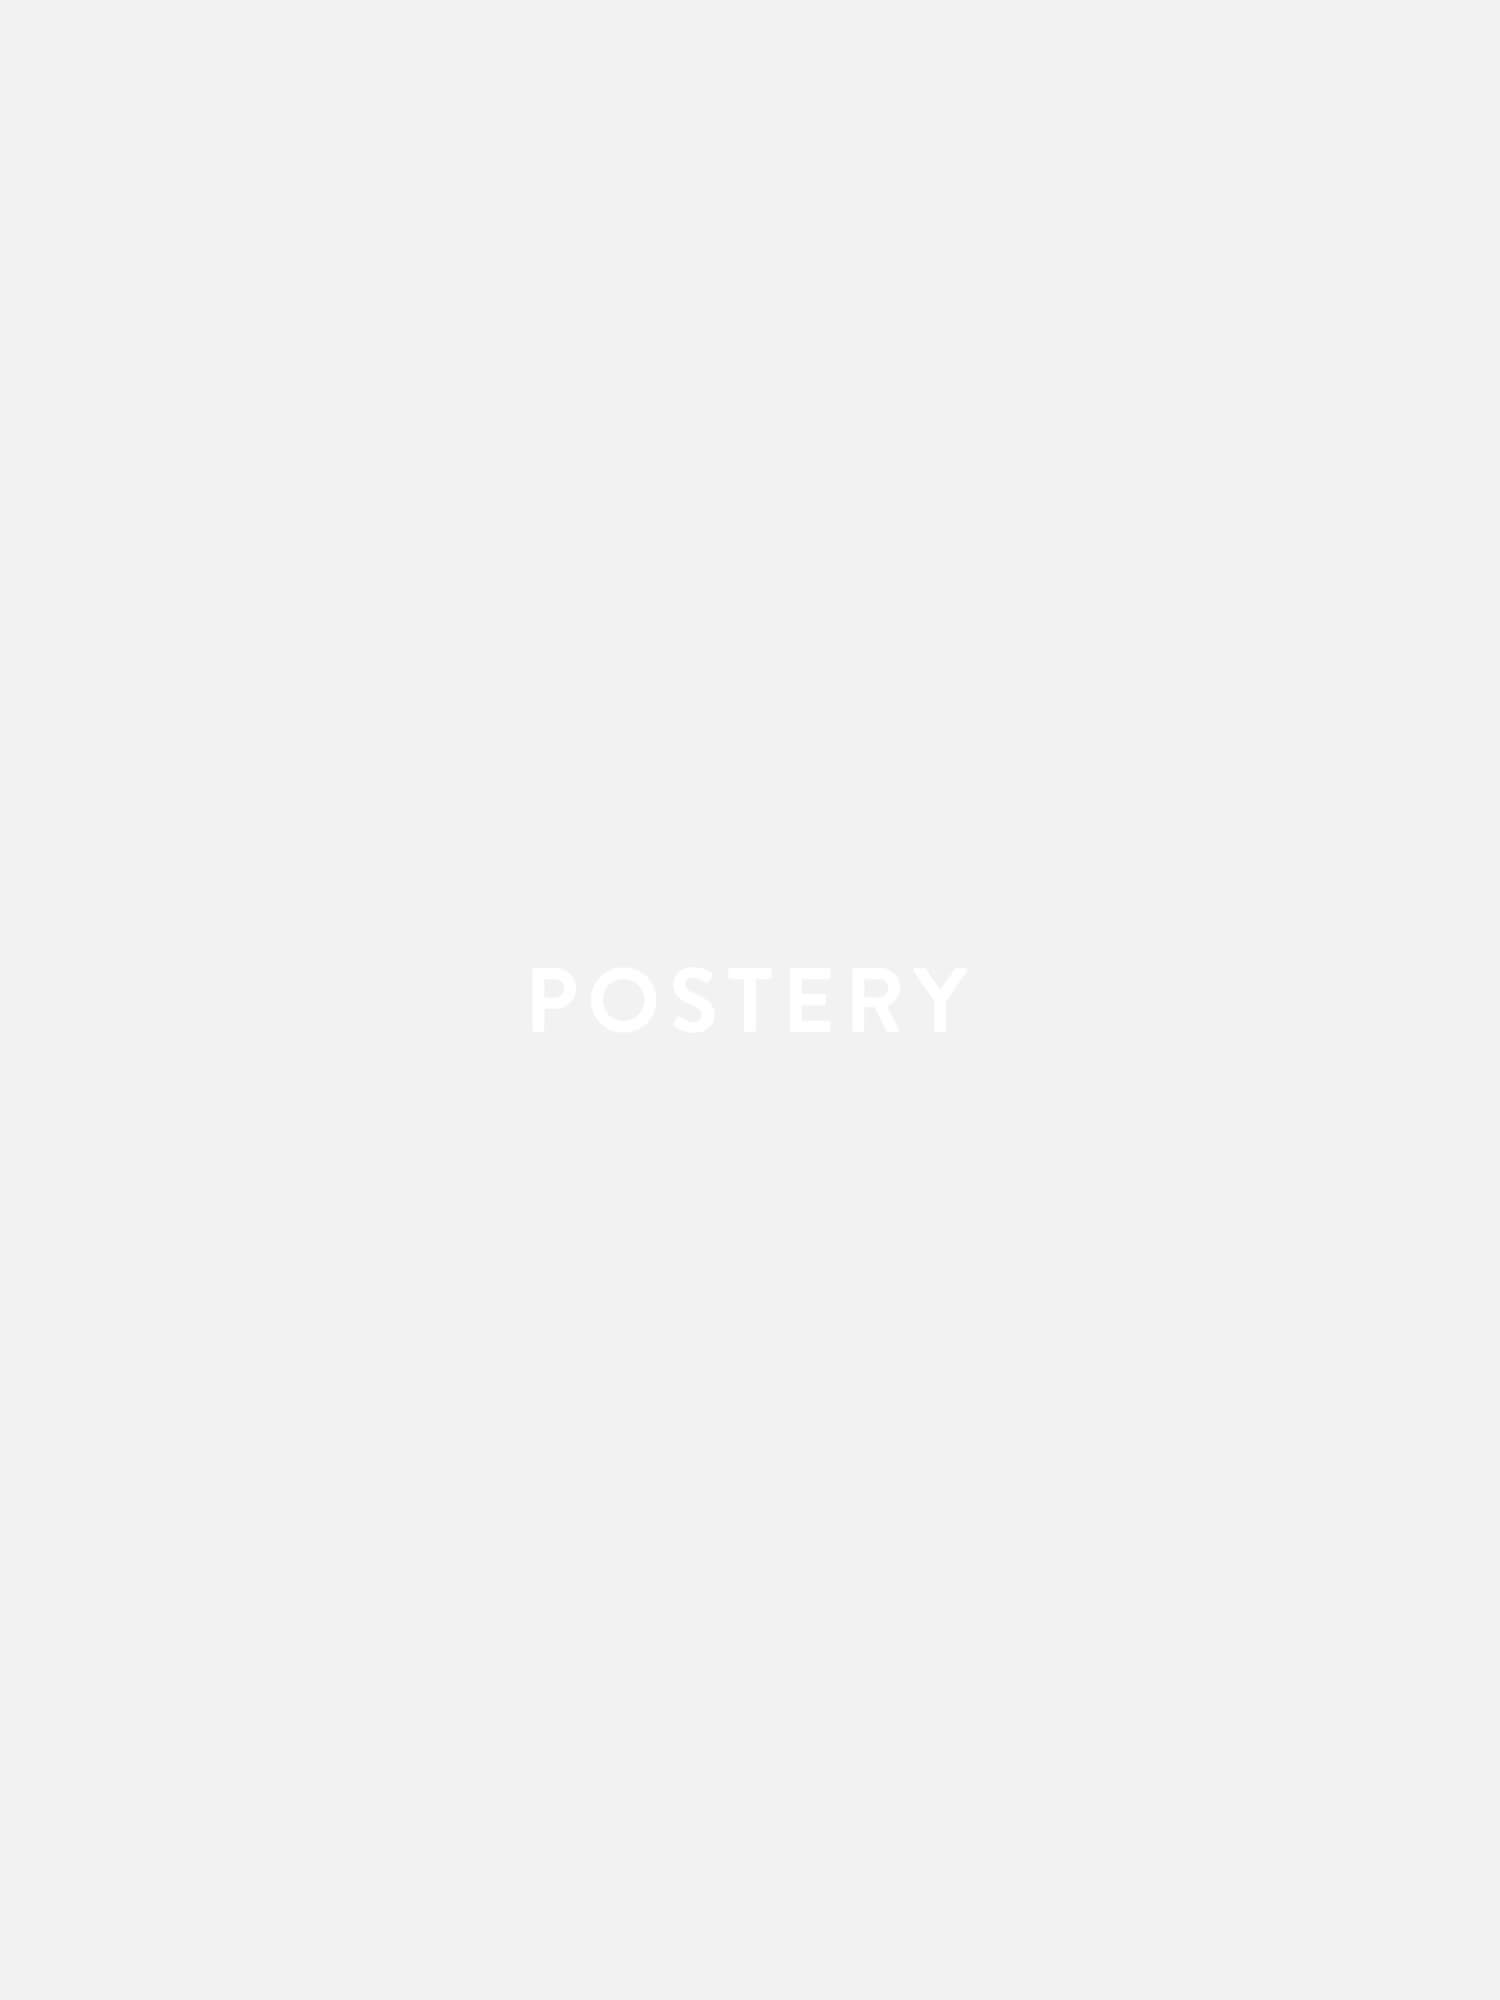 Banana Tree Leaves no.2 Poster